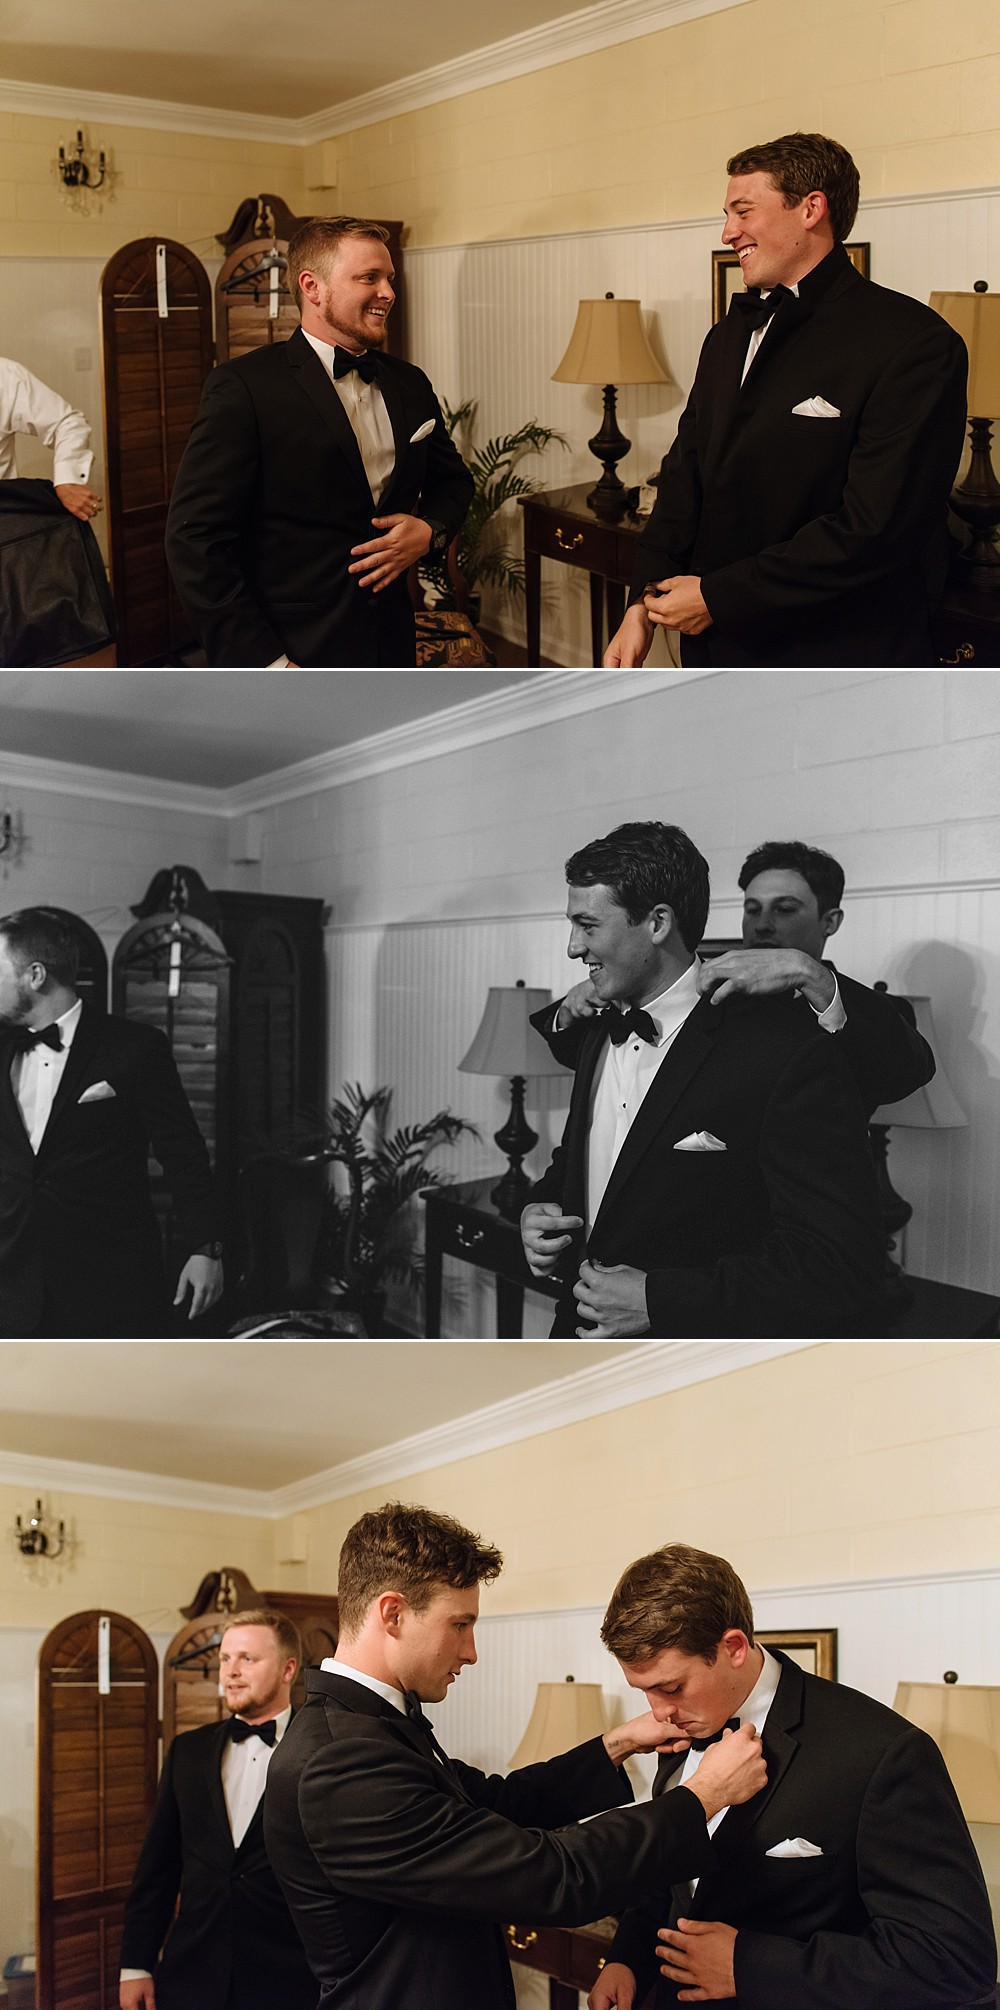 Groom and groomsmen, final images, getting ready, putting on suit